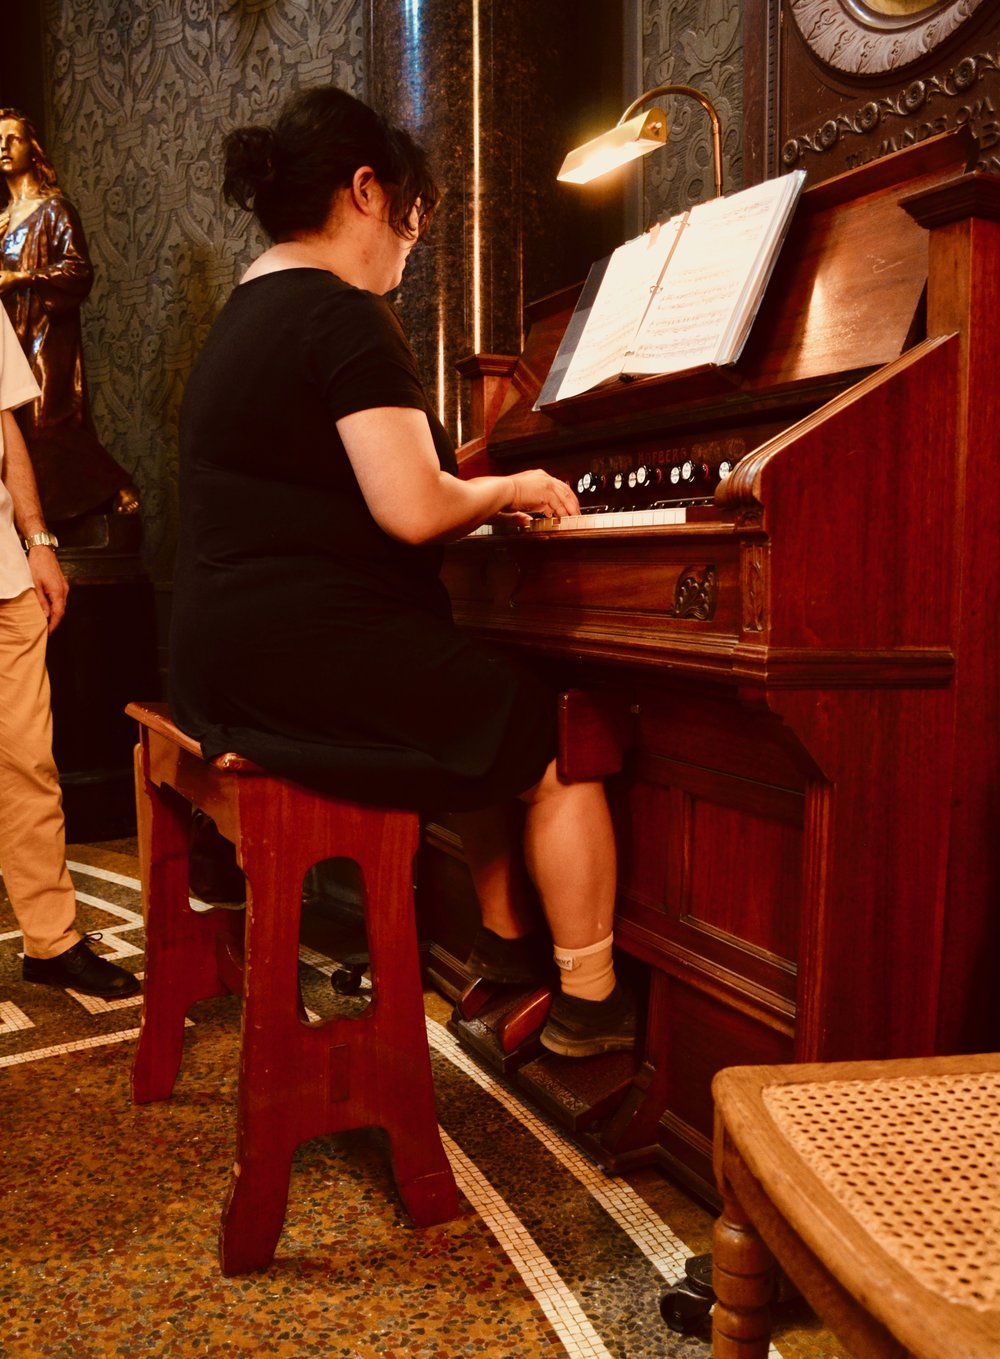 Jennifer Hsiao tries out one of the many harmoniums in Jesuskirke, Copenhagen.